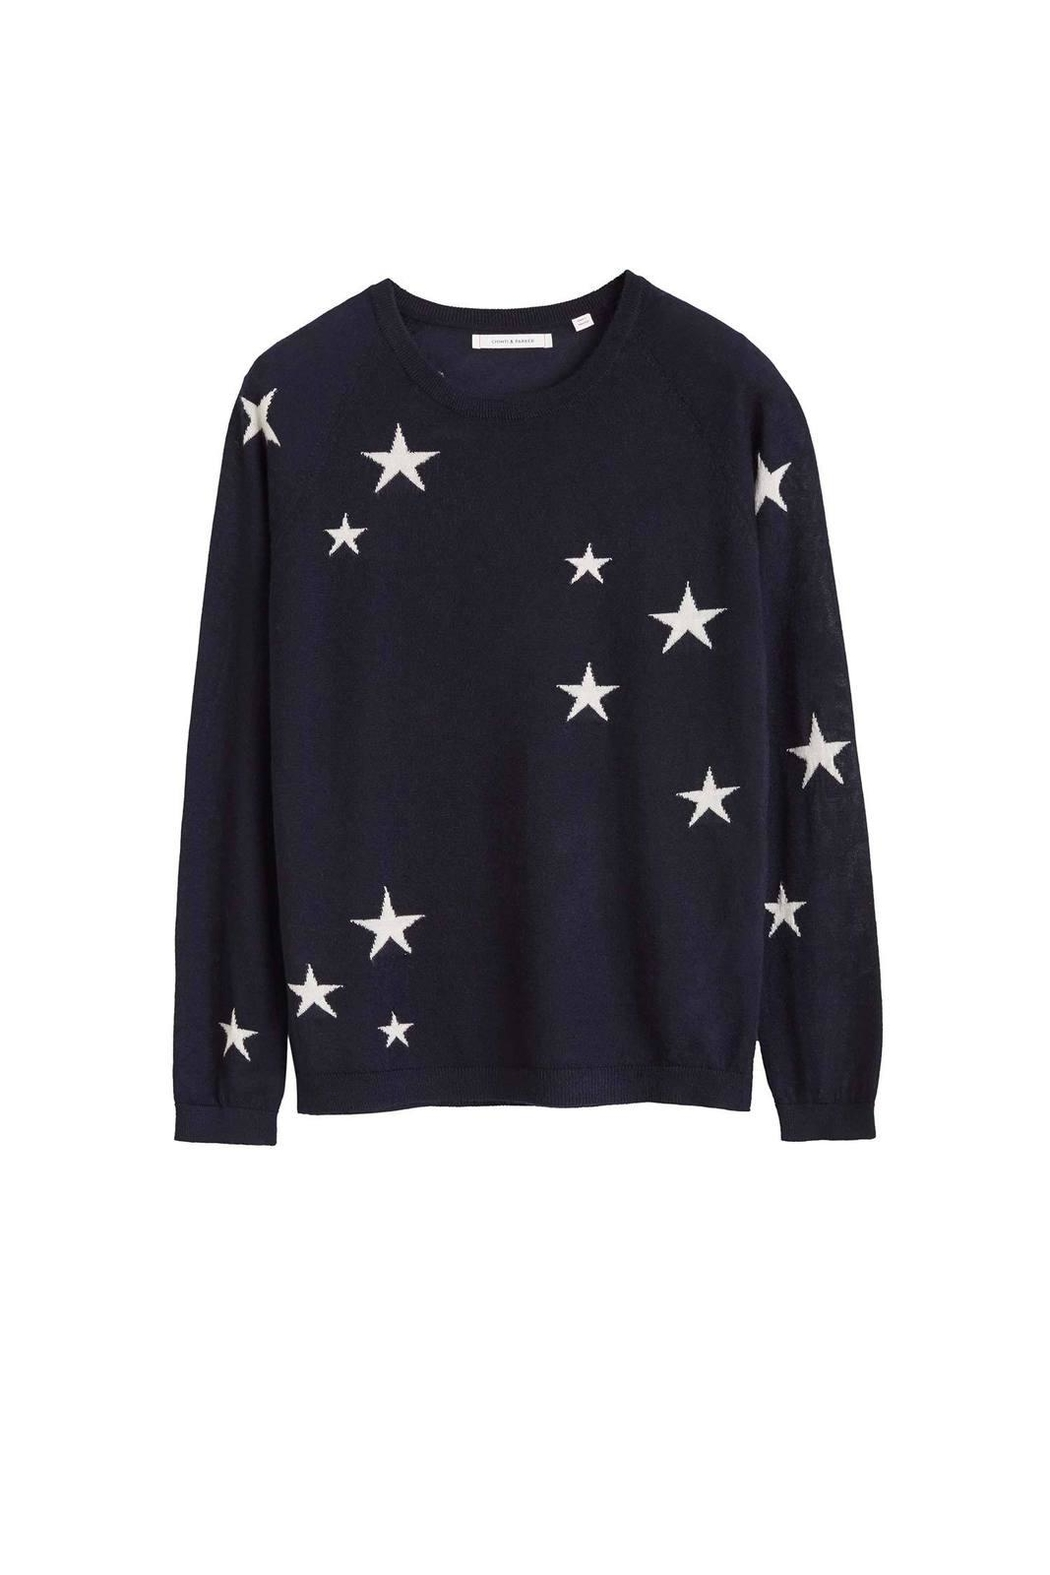 Chinti & Parker Star Sweater - Back Cropped Image